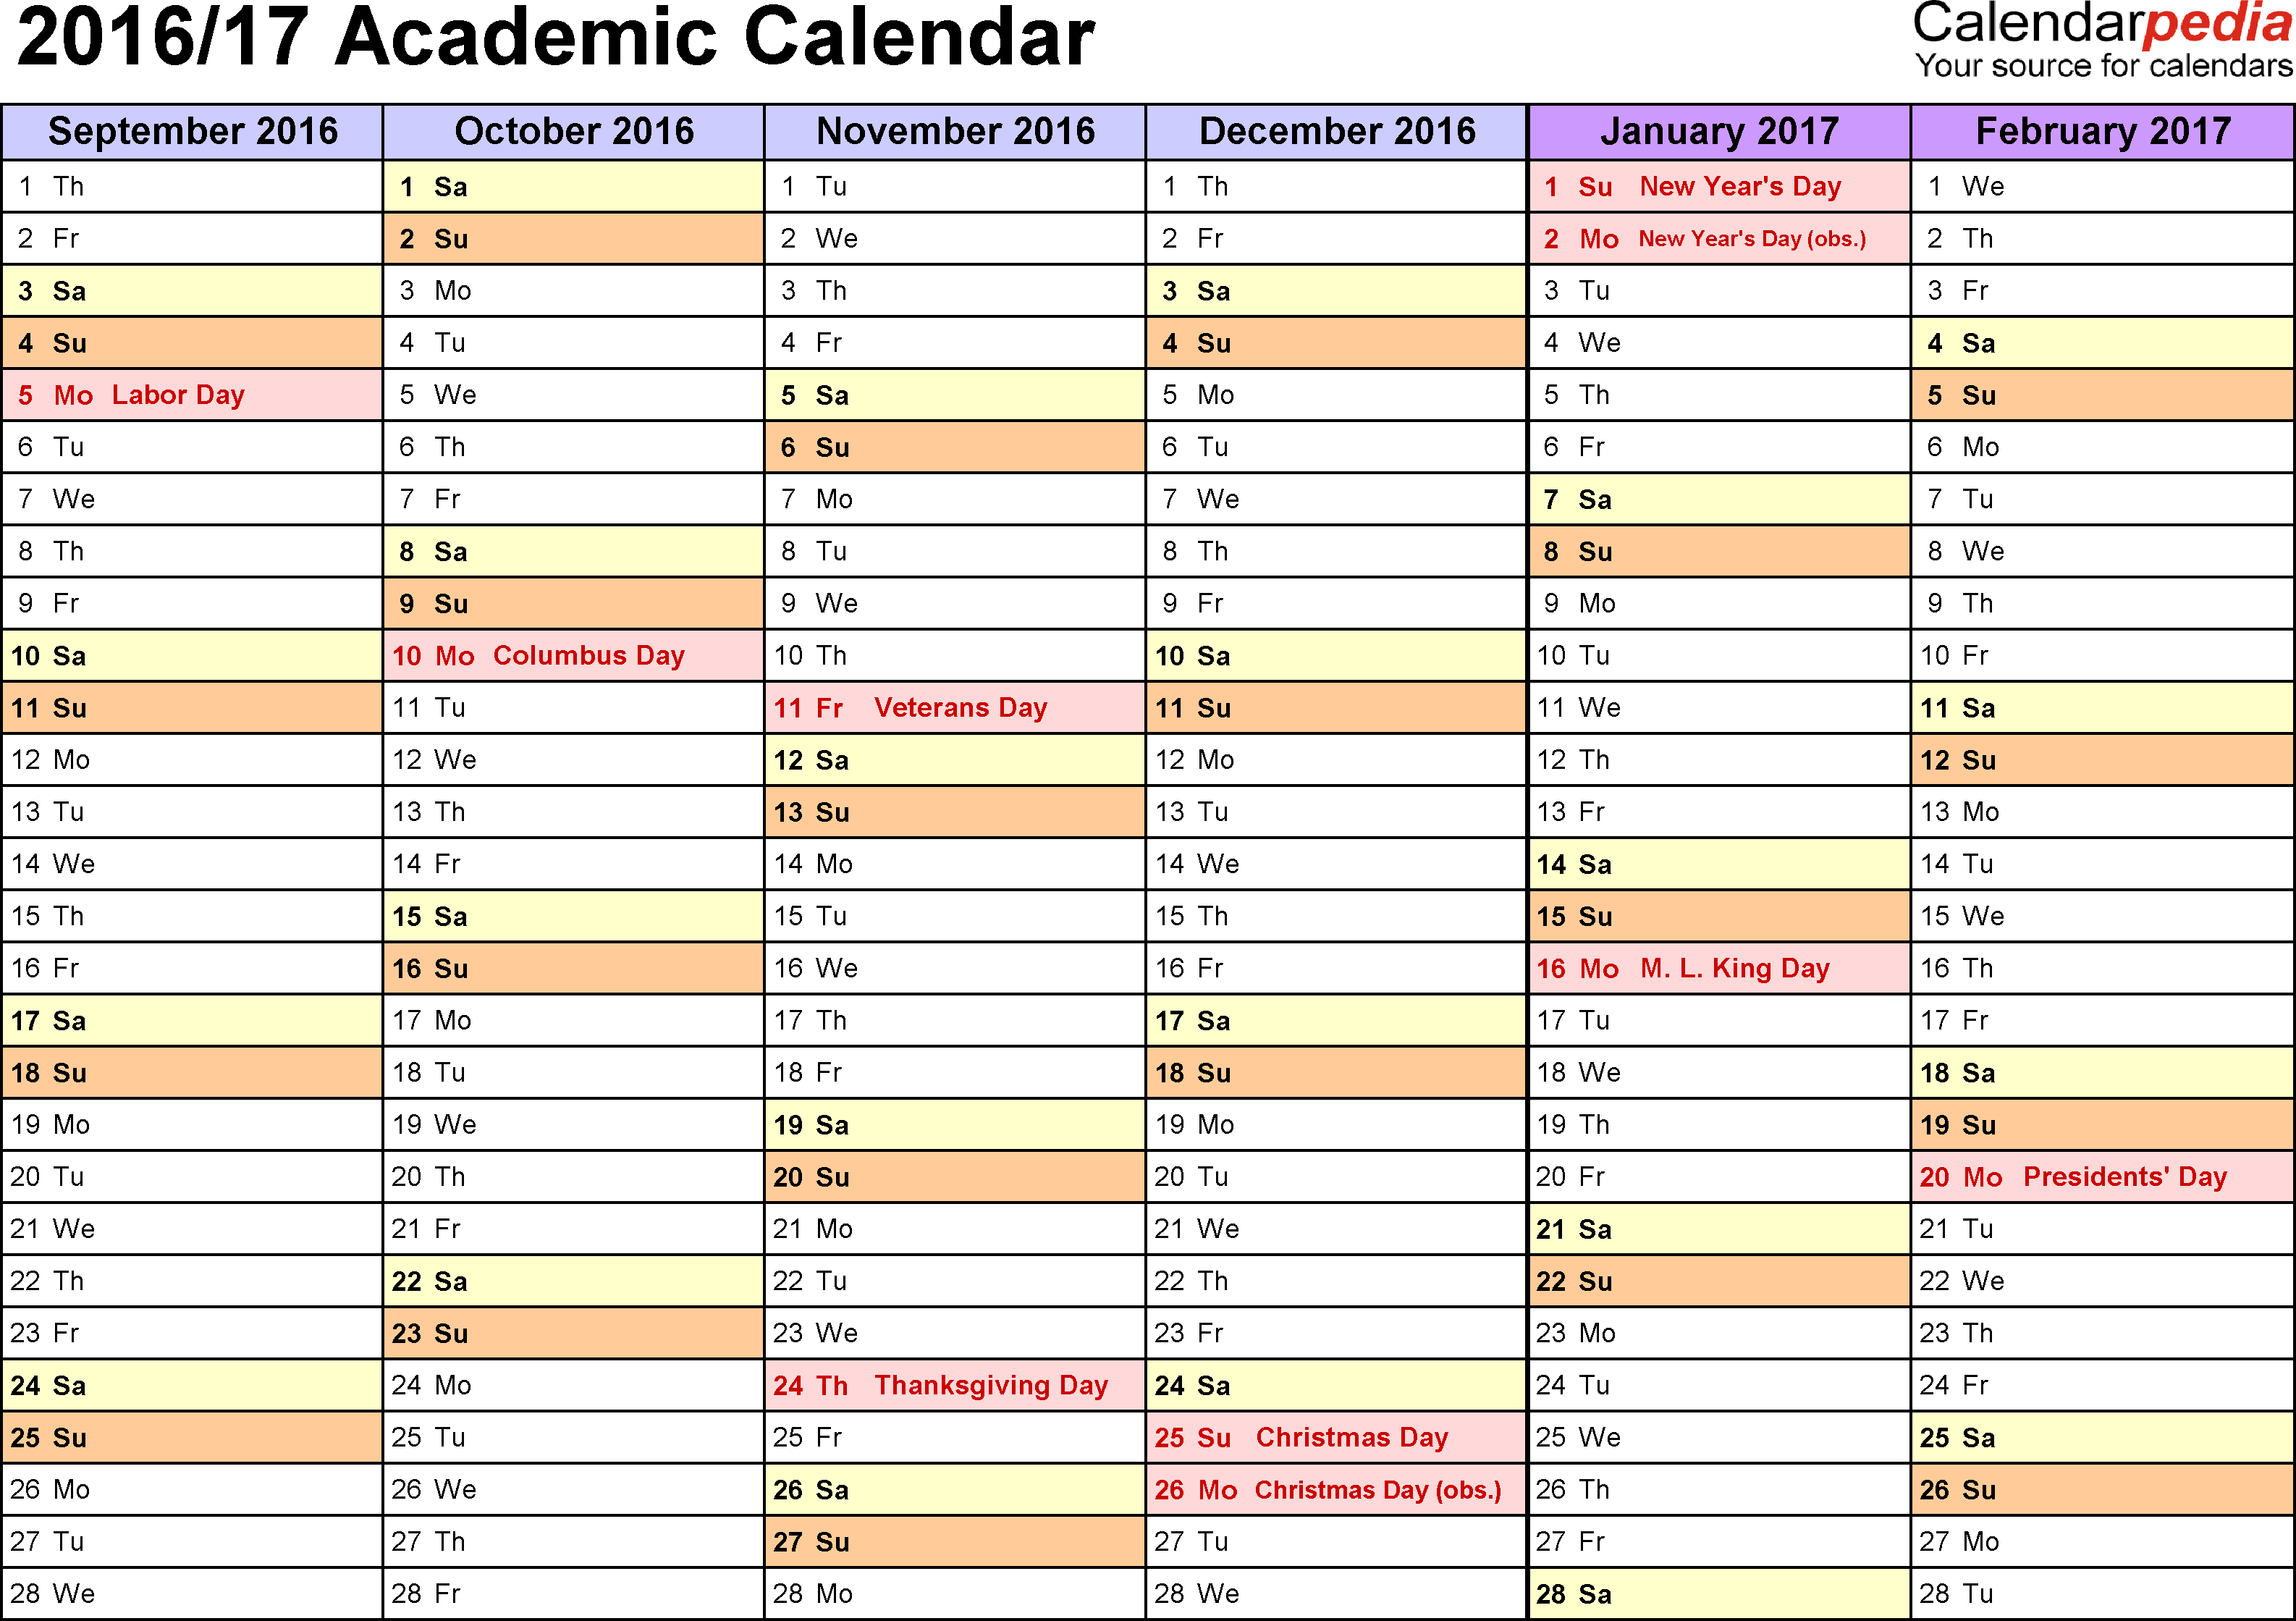 Template 3: Academic calendar 2016/17 for Word, landscape orientation, months horizontally, 2 pages